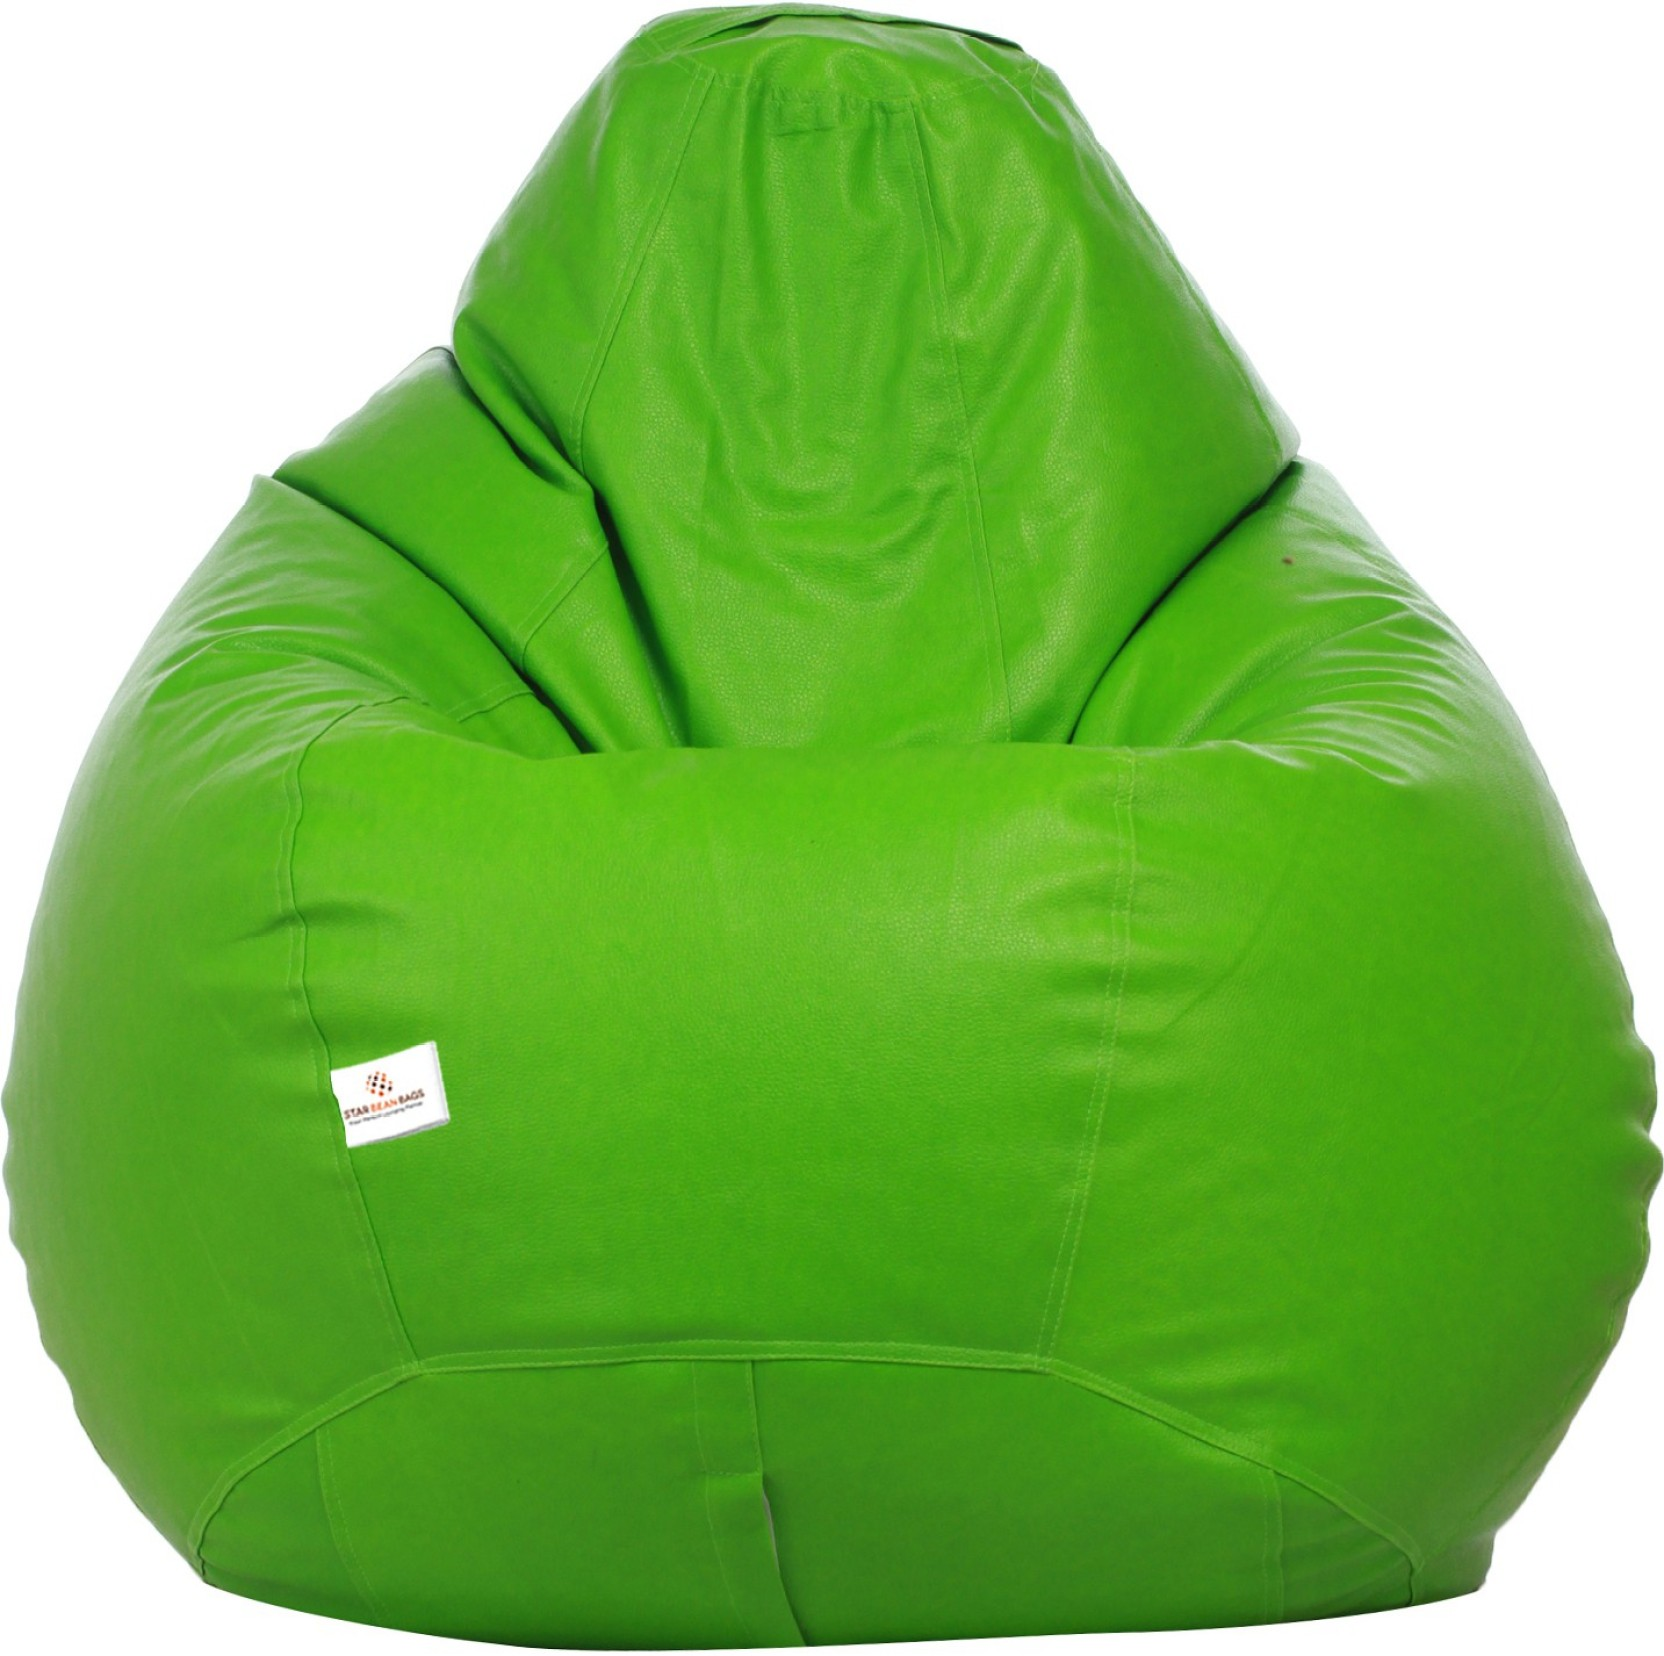 Star Xxxl Classic Bean Bag With Bean Filling Price In